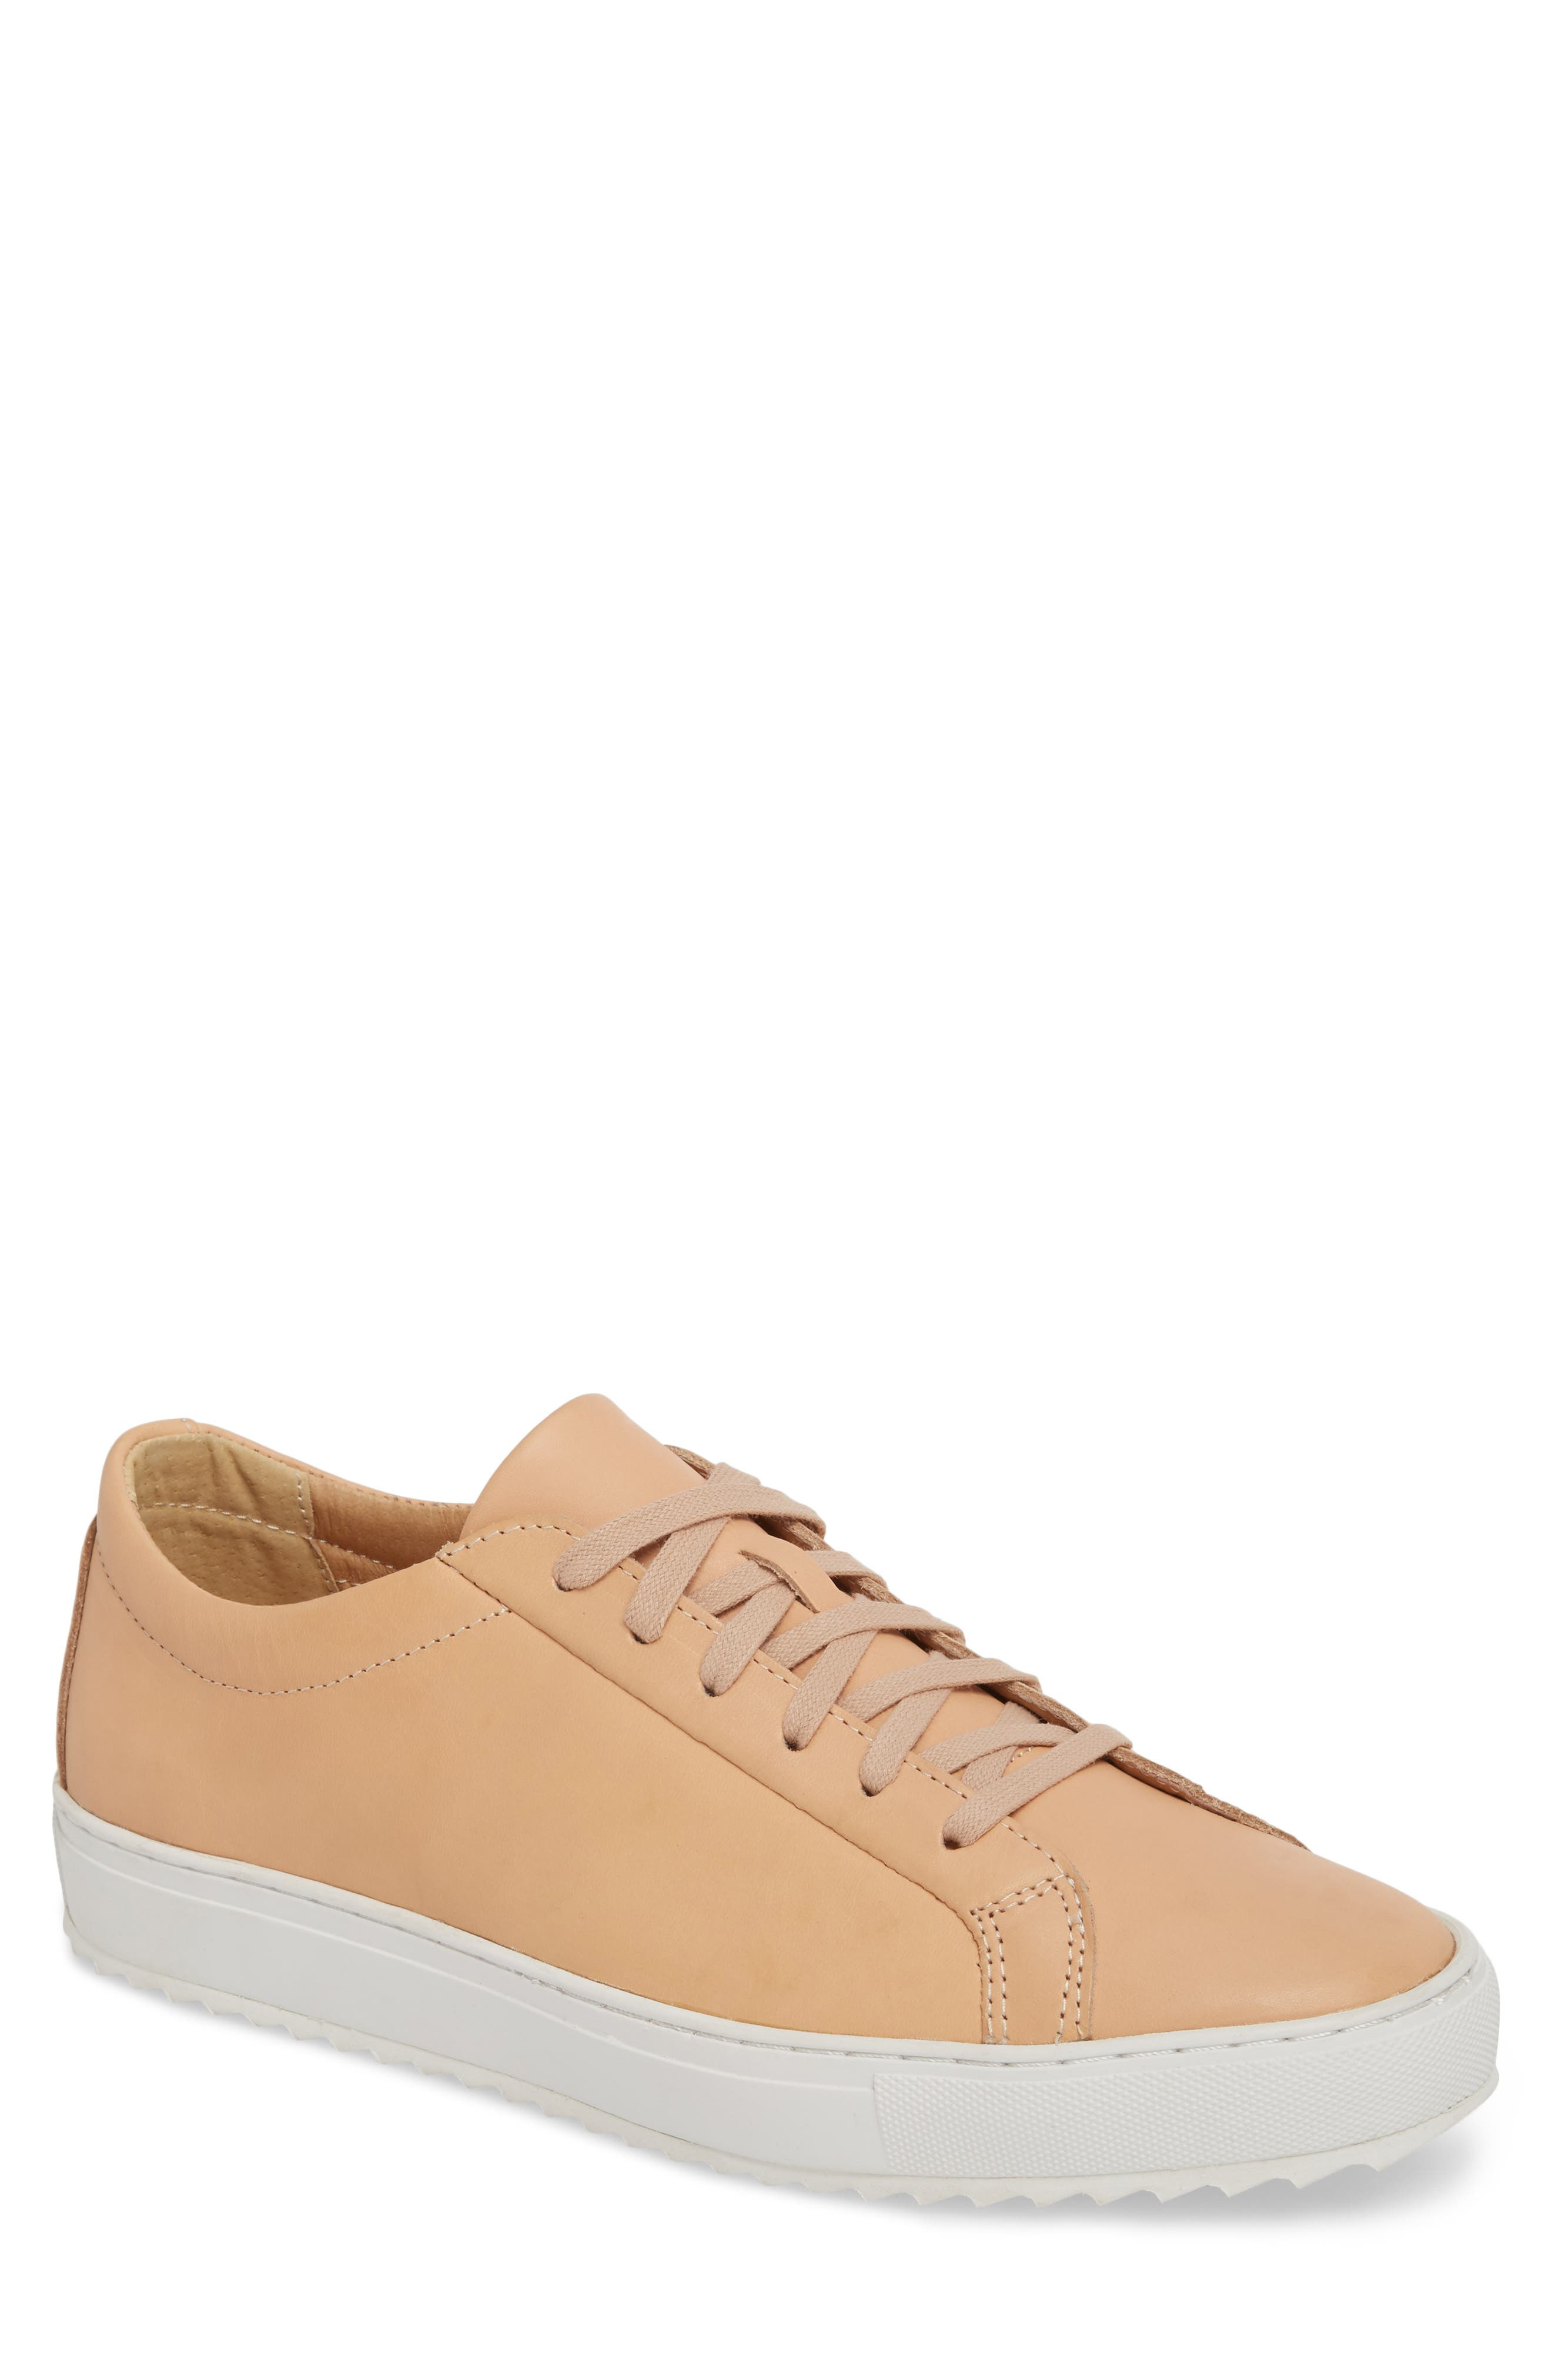 Kennedy Lugged Sneaker,                         Main,                         color, Natural Leather